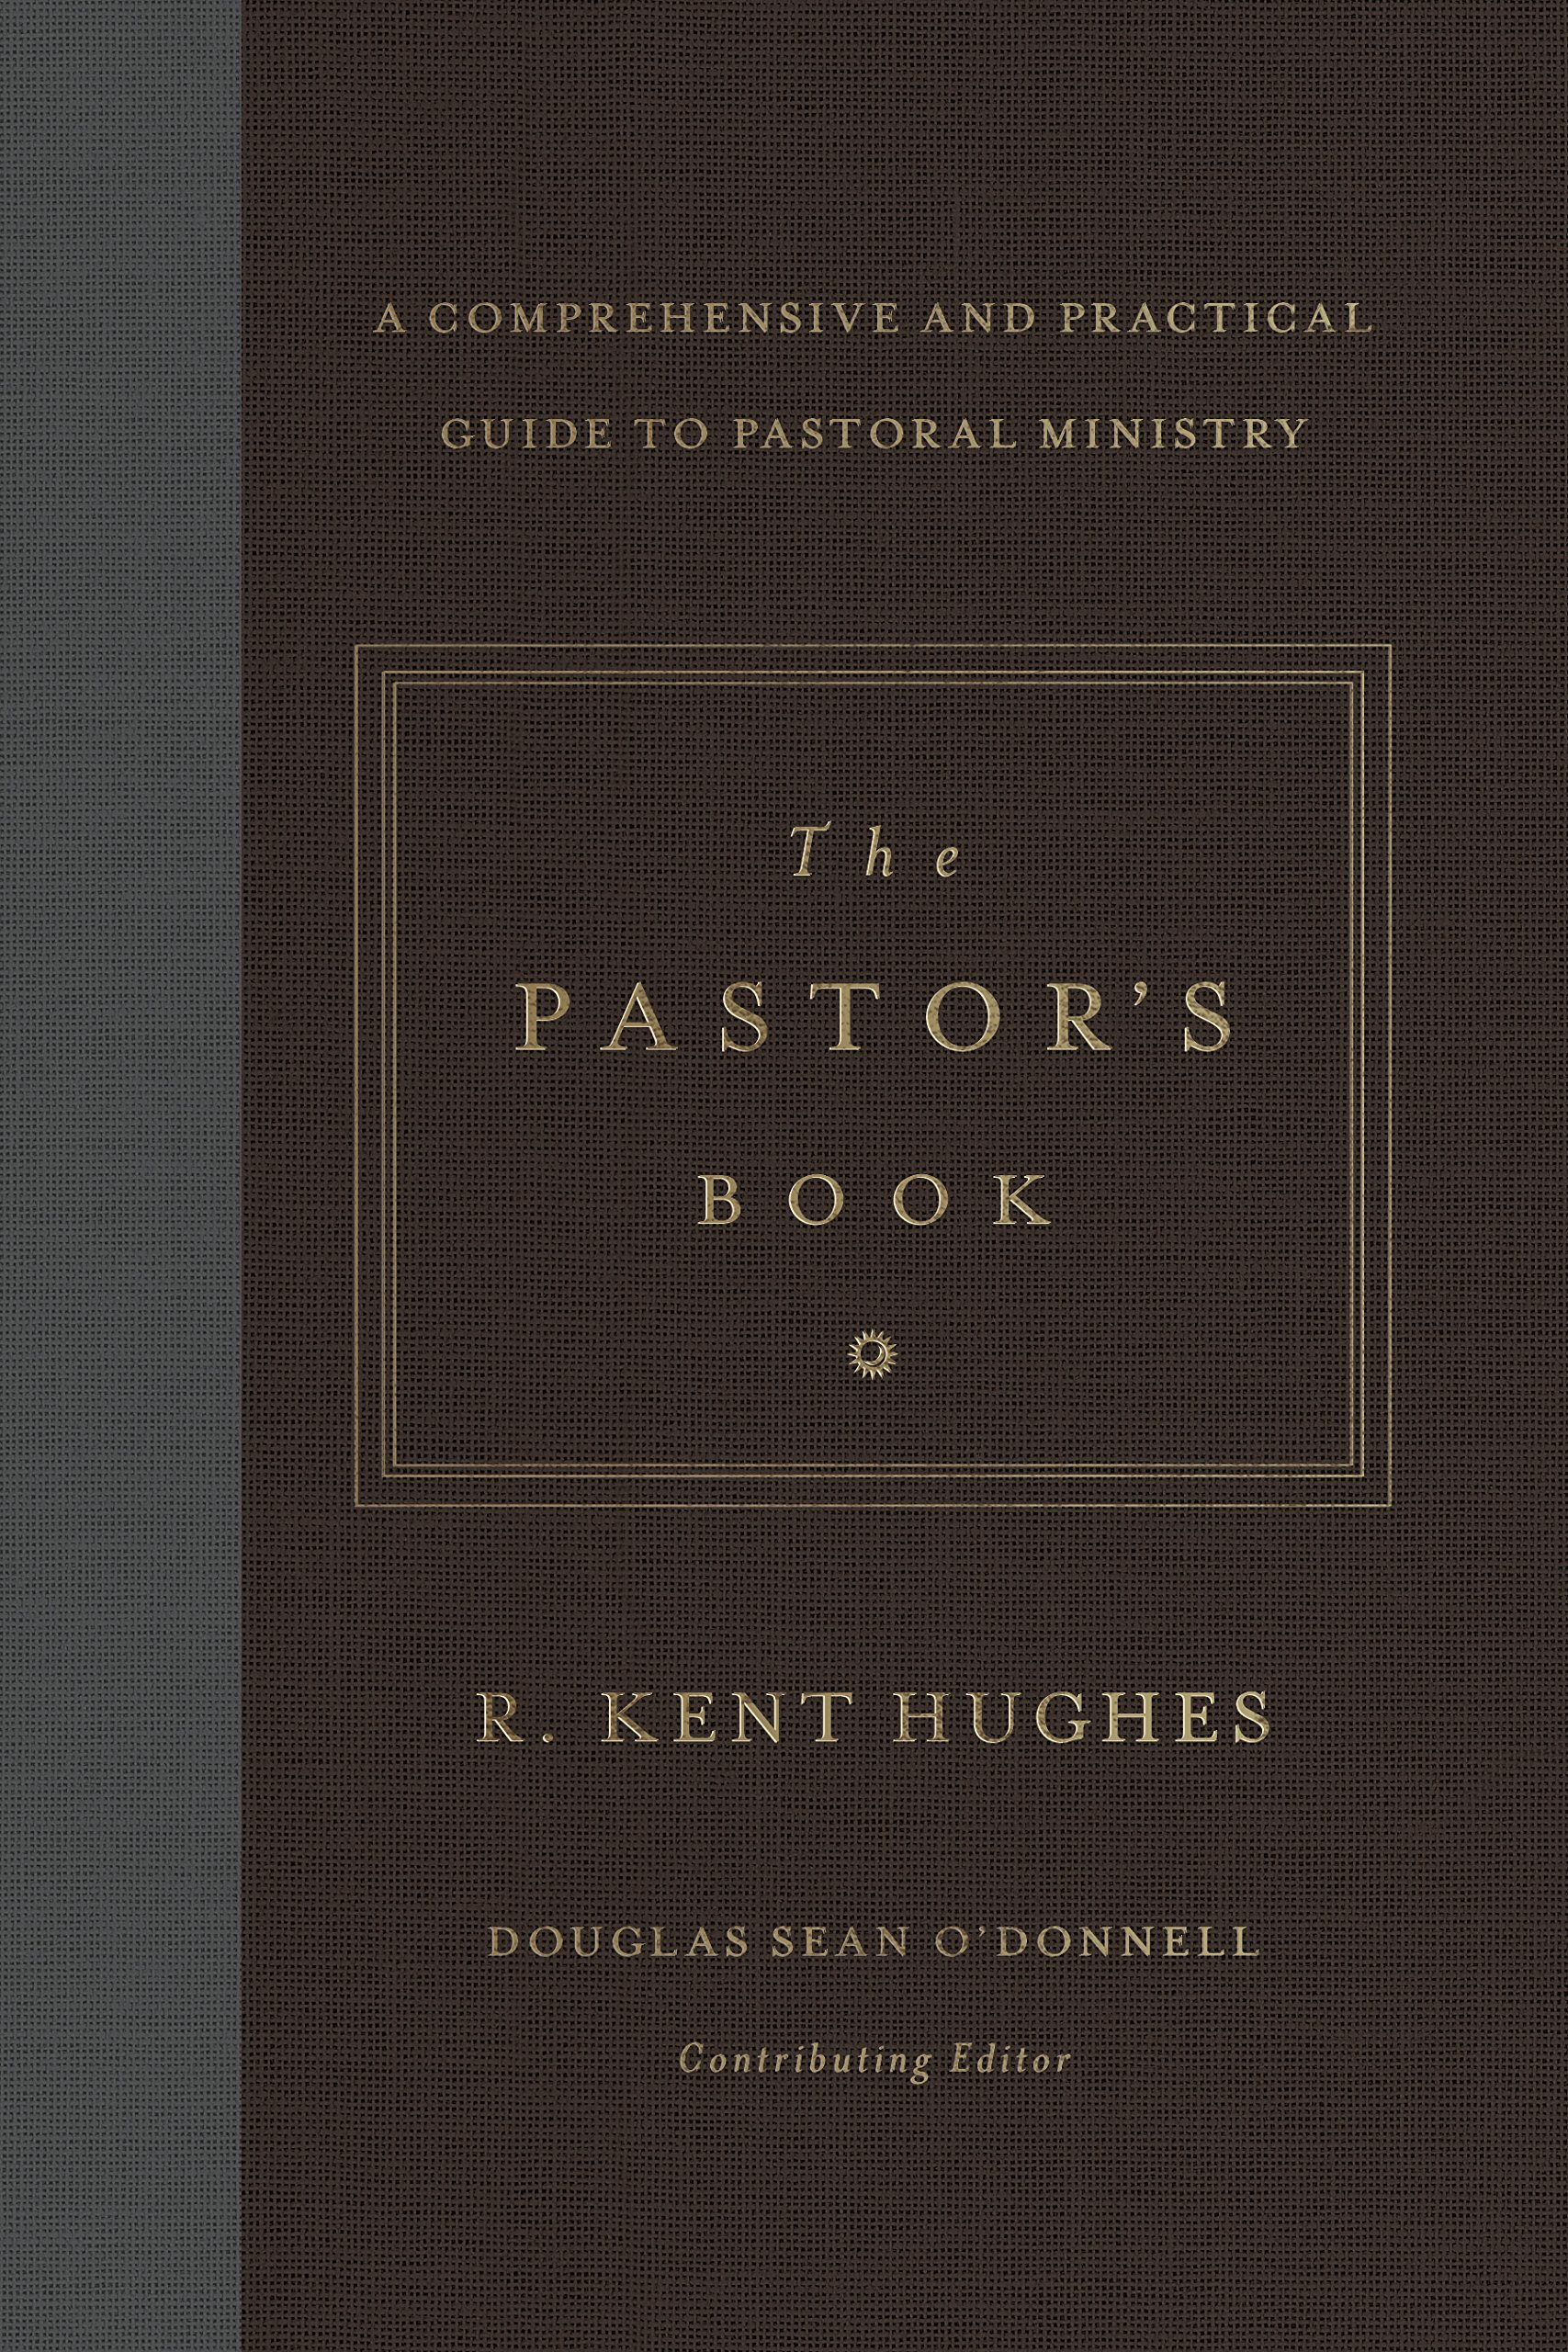 New books of note nate claiborne finally thanks to crossways ebook program i was able to get the pastors book a comprehensive and practical guide to pastoral ministry you can read a fandeluxe Gallery